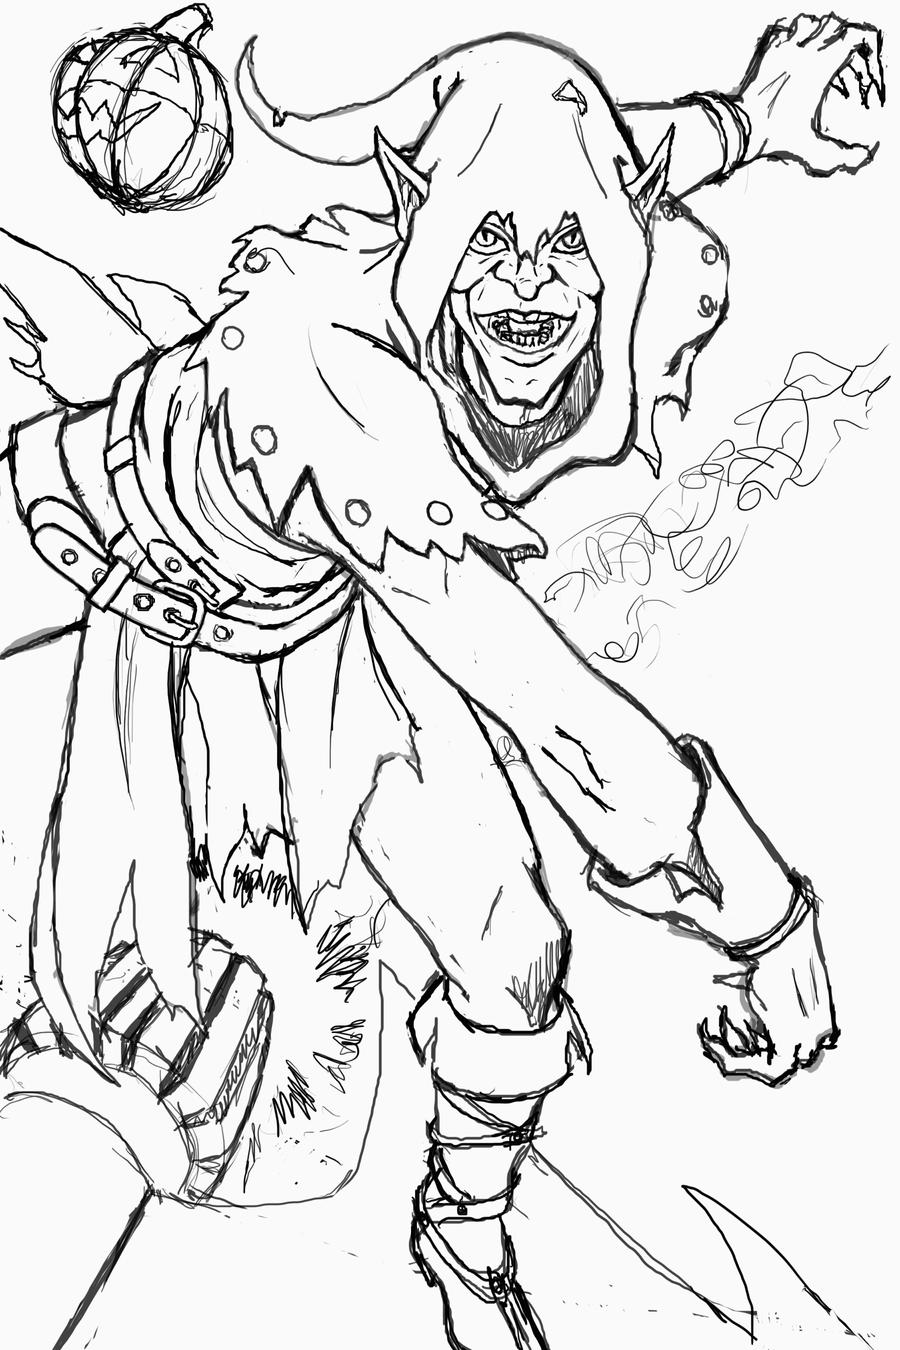 green goblin coloring pages to print | Green Goblin WIP by CodenameZeus on deviantART